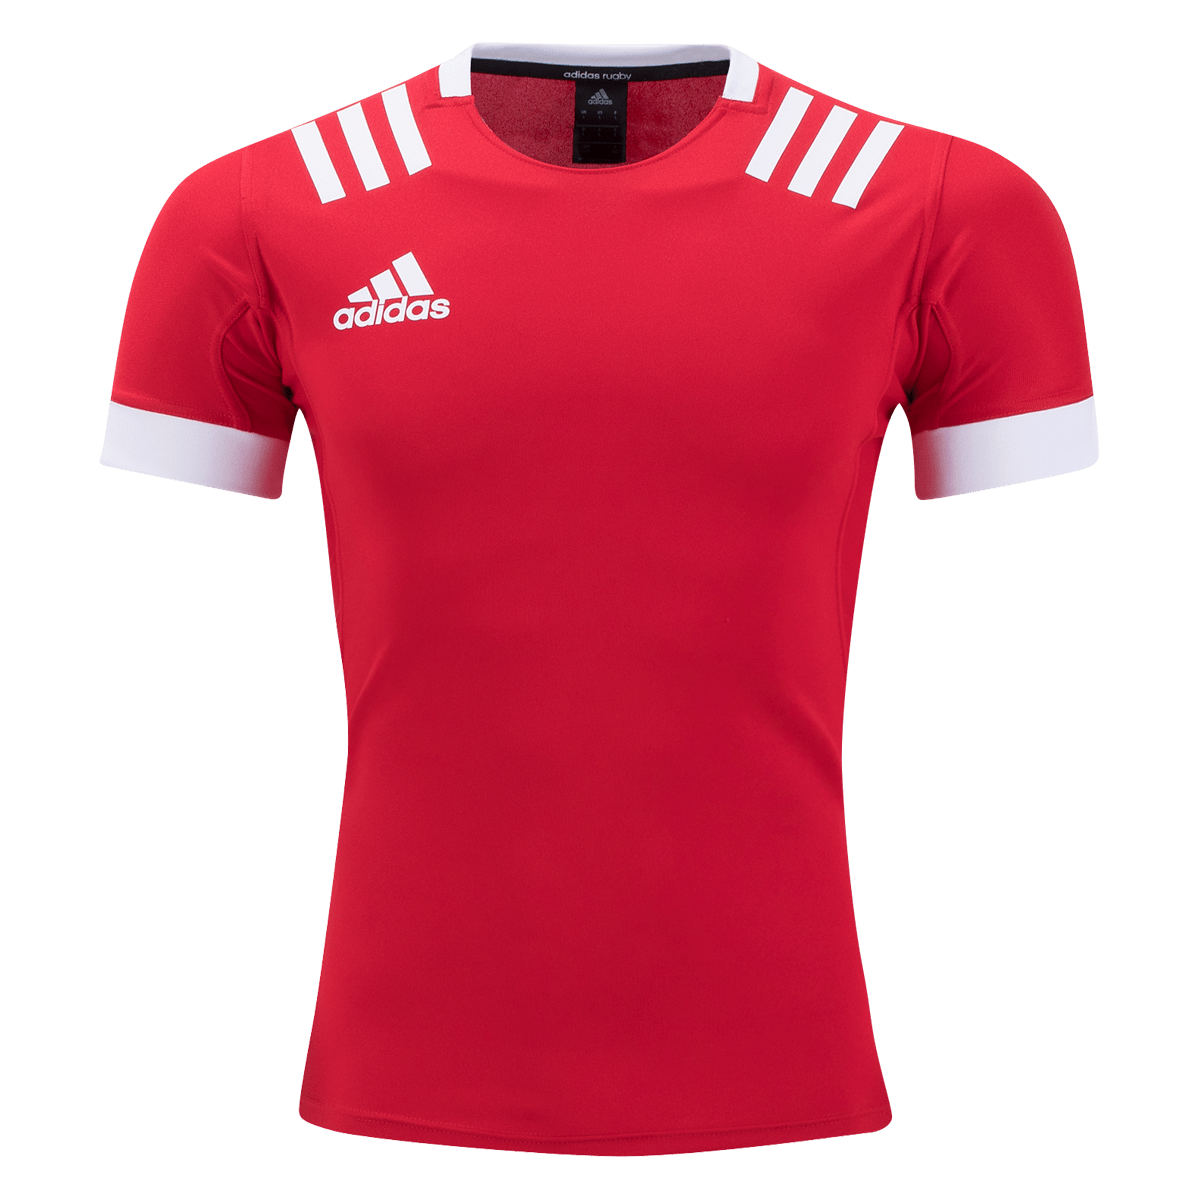 adidas Red/White 3 Stripes Jersey